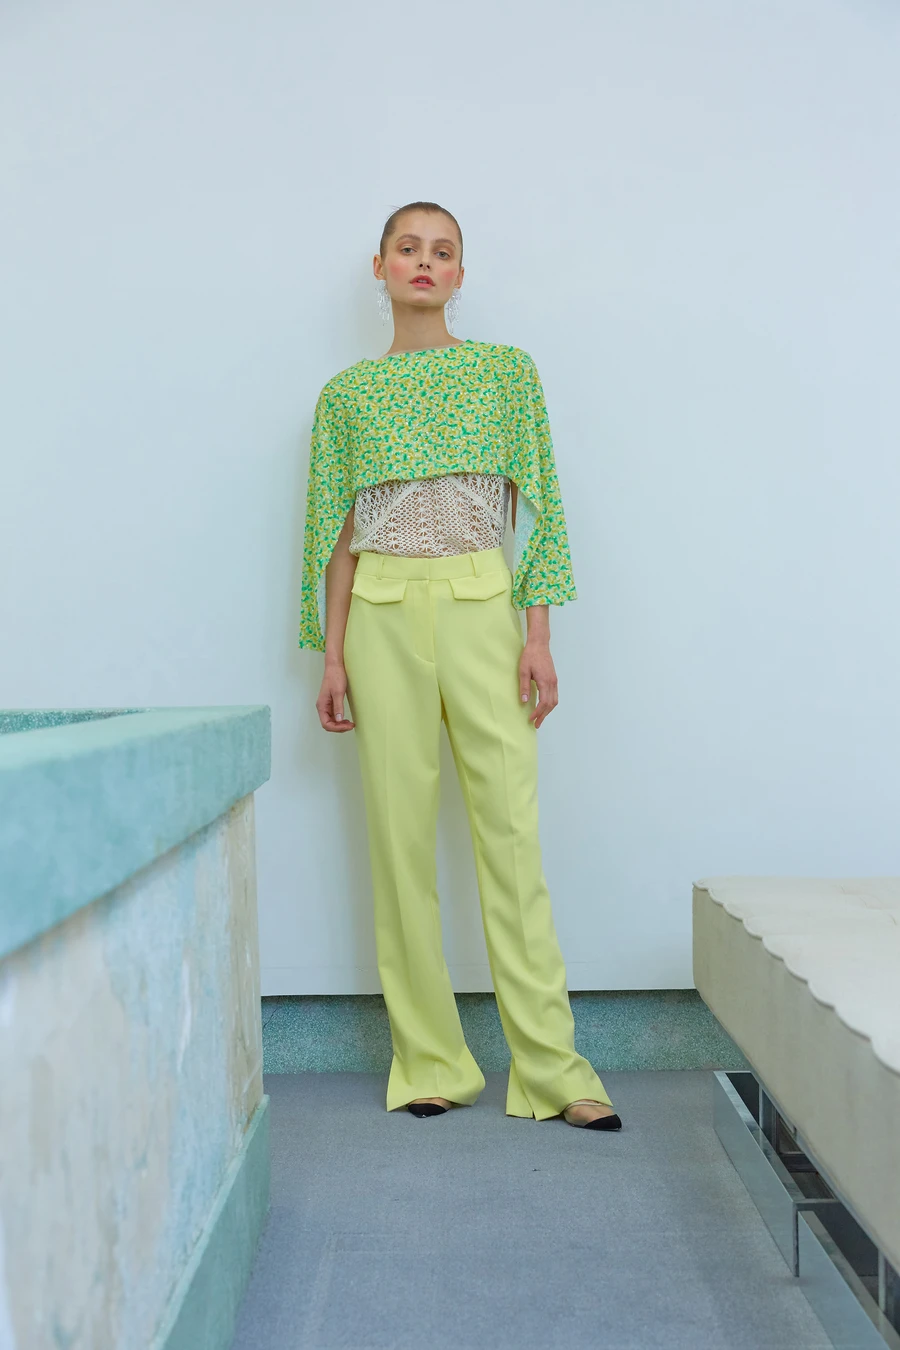 """You should buy this under-$60 pair of slime green slacks if only to wear to your doorstep and back. <br> <br> <strong>Loeil</strong> Akuchi Pant, $, available at <a href=""""https://go.skimresources.com/?id=30283X879131&url=https%3A%2F%2Ftheloeil.com%2Fcollections%2Fsale%2Fproducts%2Fakuchi-pant-lemon"""" rel=""""nofollow noopener"""" target=""""_blank"""" data-ylk=""""slk:Loeil"""" class=""""link rapid-noclick-resp"""">Loeil</a>"""